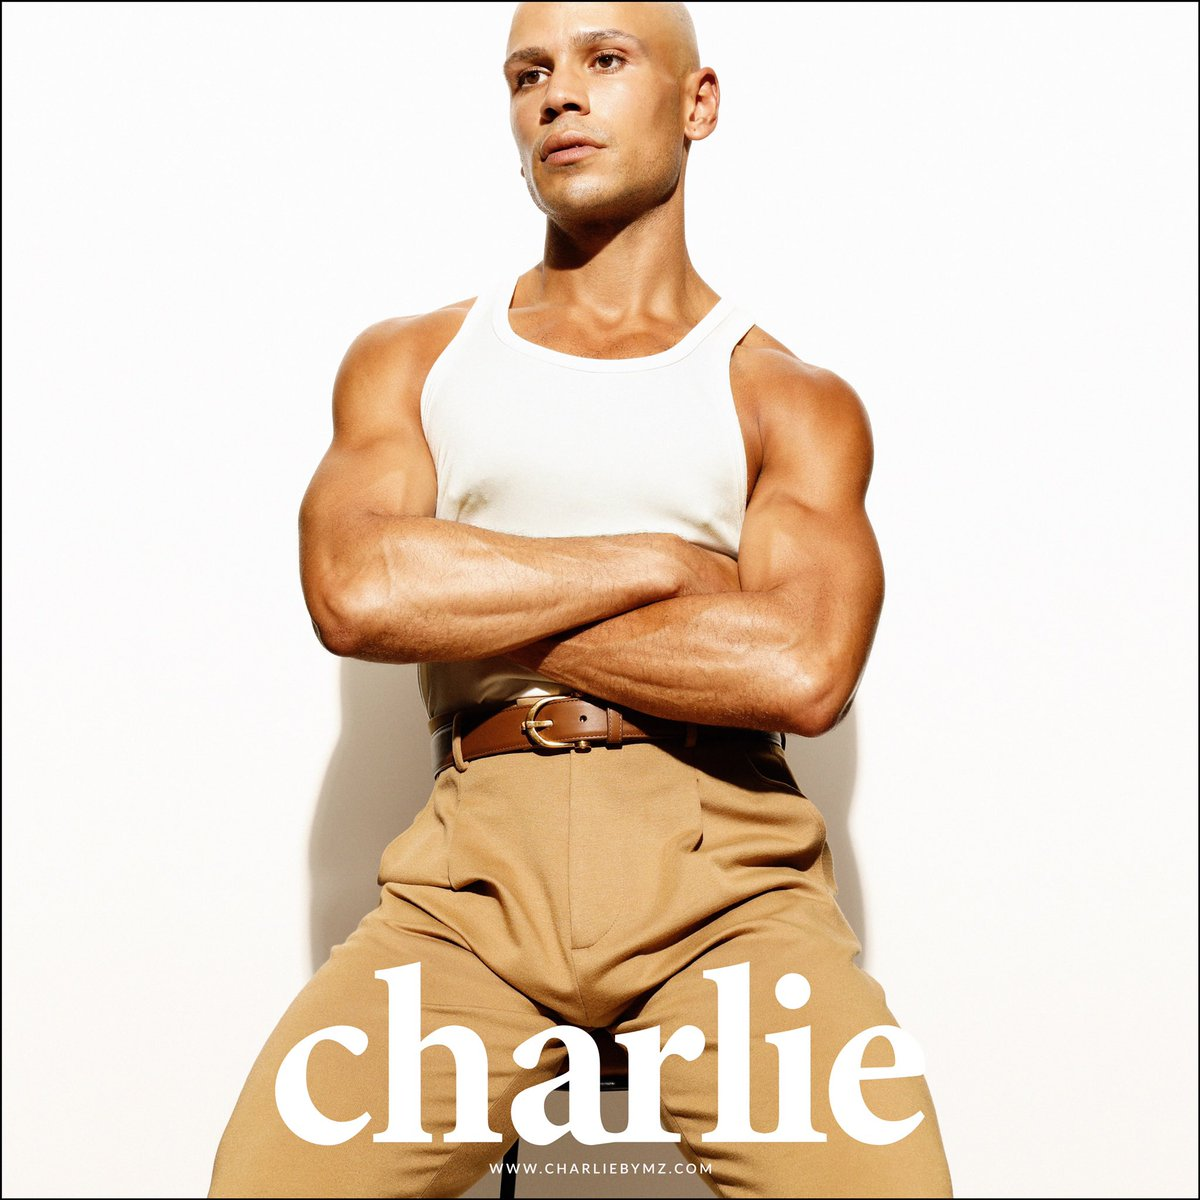 THE MUSTANG RIBBED TANK. Part of the Charlie Mustang Underwear Series.  SHOP NOW Exclusively at https://t.co/KkePkfVjnC. #Charliebymz#charliefan#forevercharlie#charlietanks#mens#tanktops#charlie#mustang https://t.co/xZKgFAivaZ